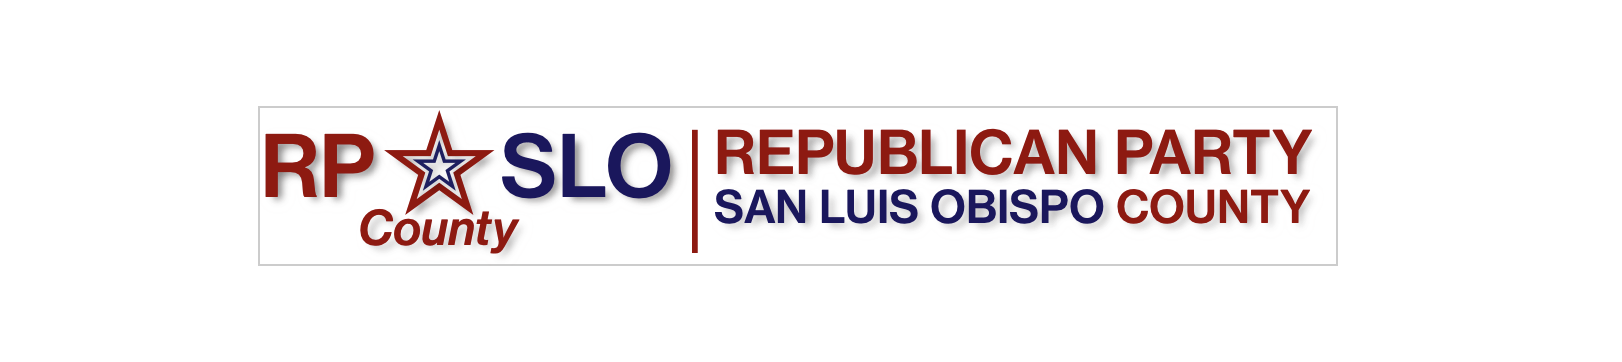 San Luis Obispo County Republican Party